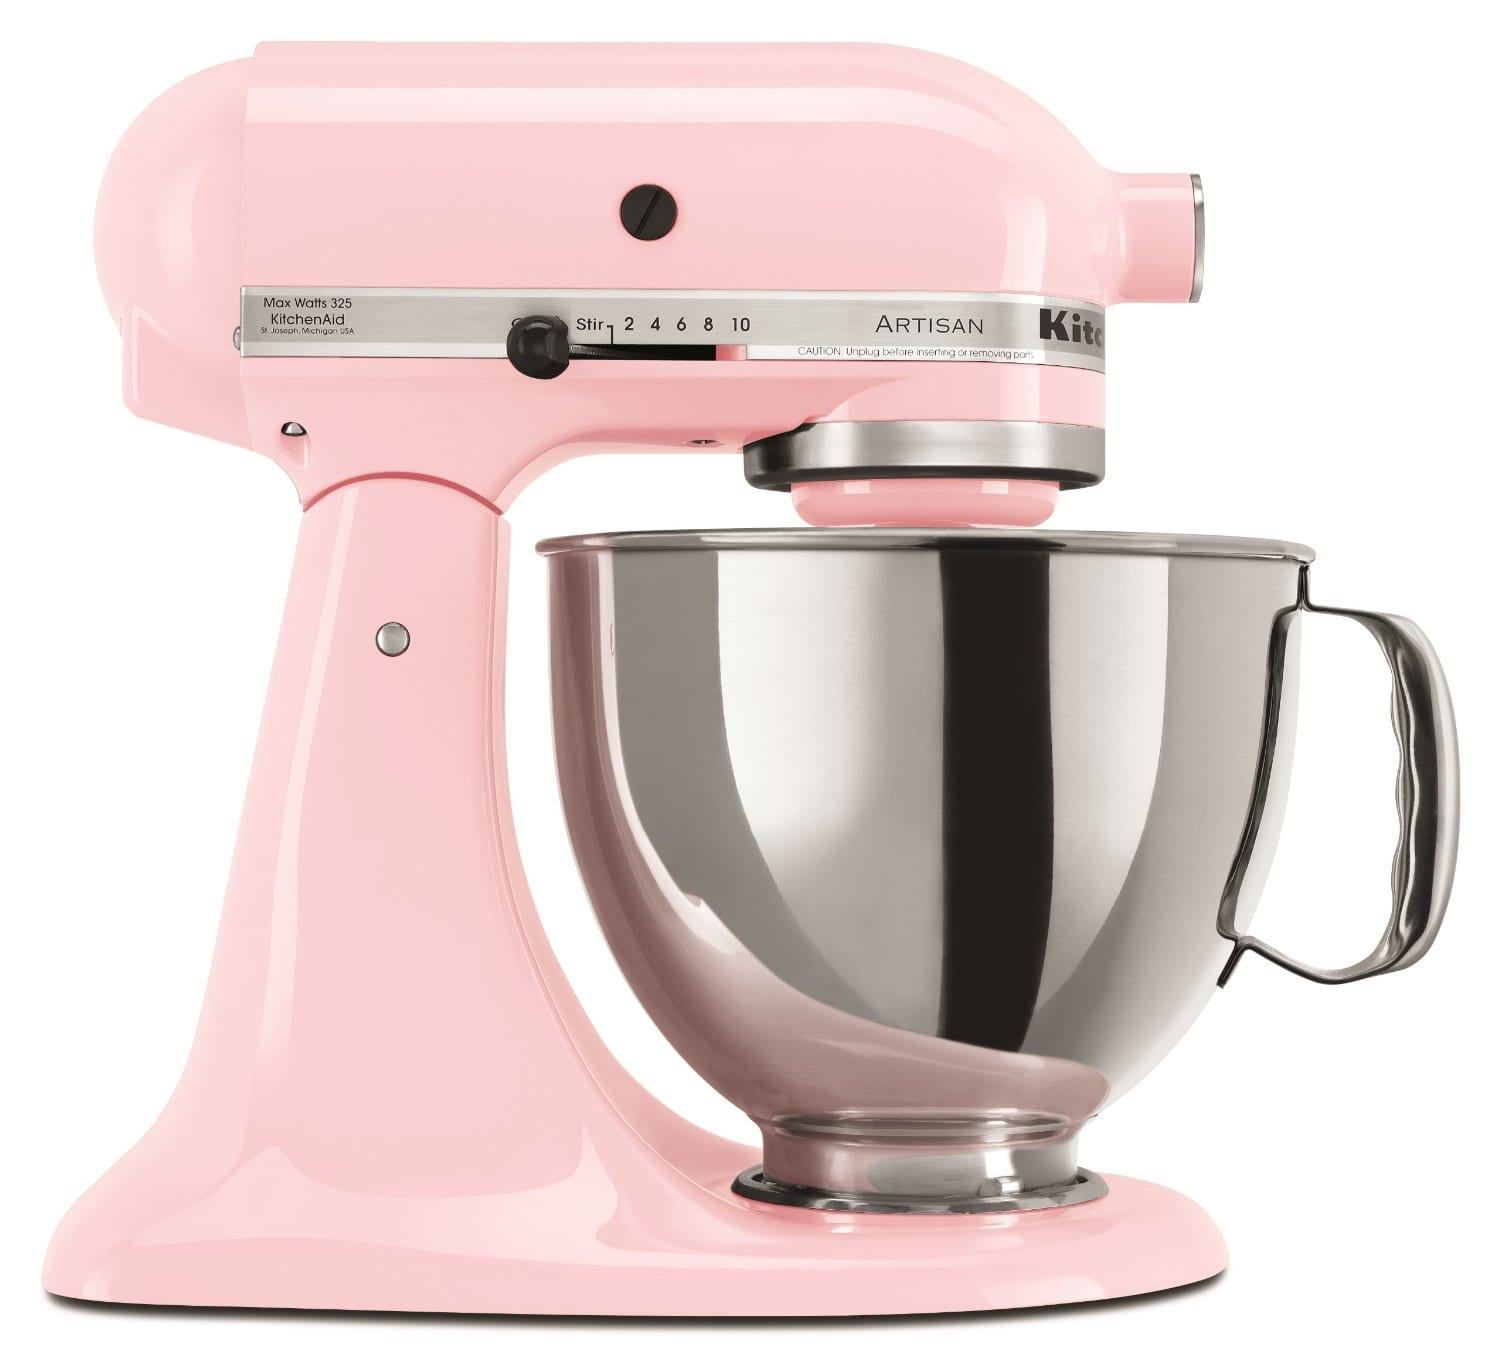 Housewarming Gift Ideas: Pink KitchenAid Mixer